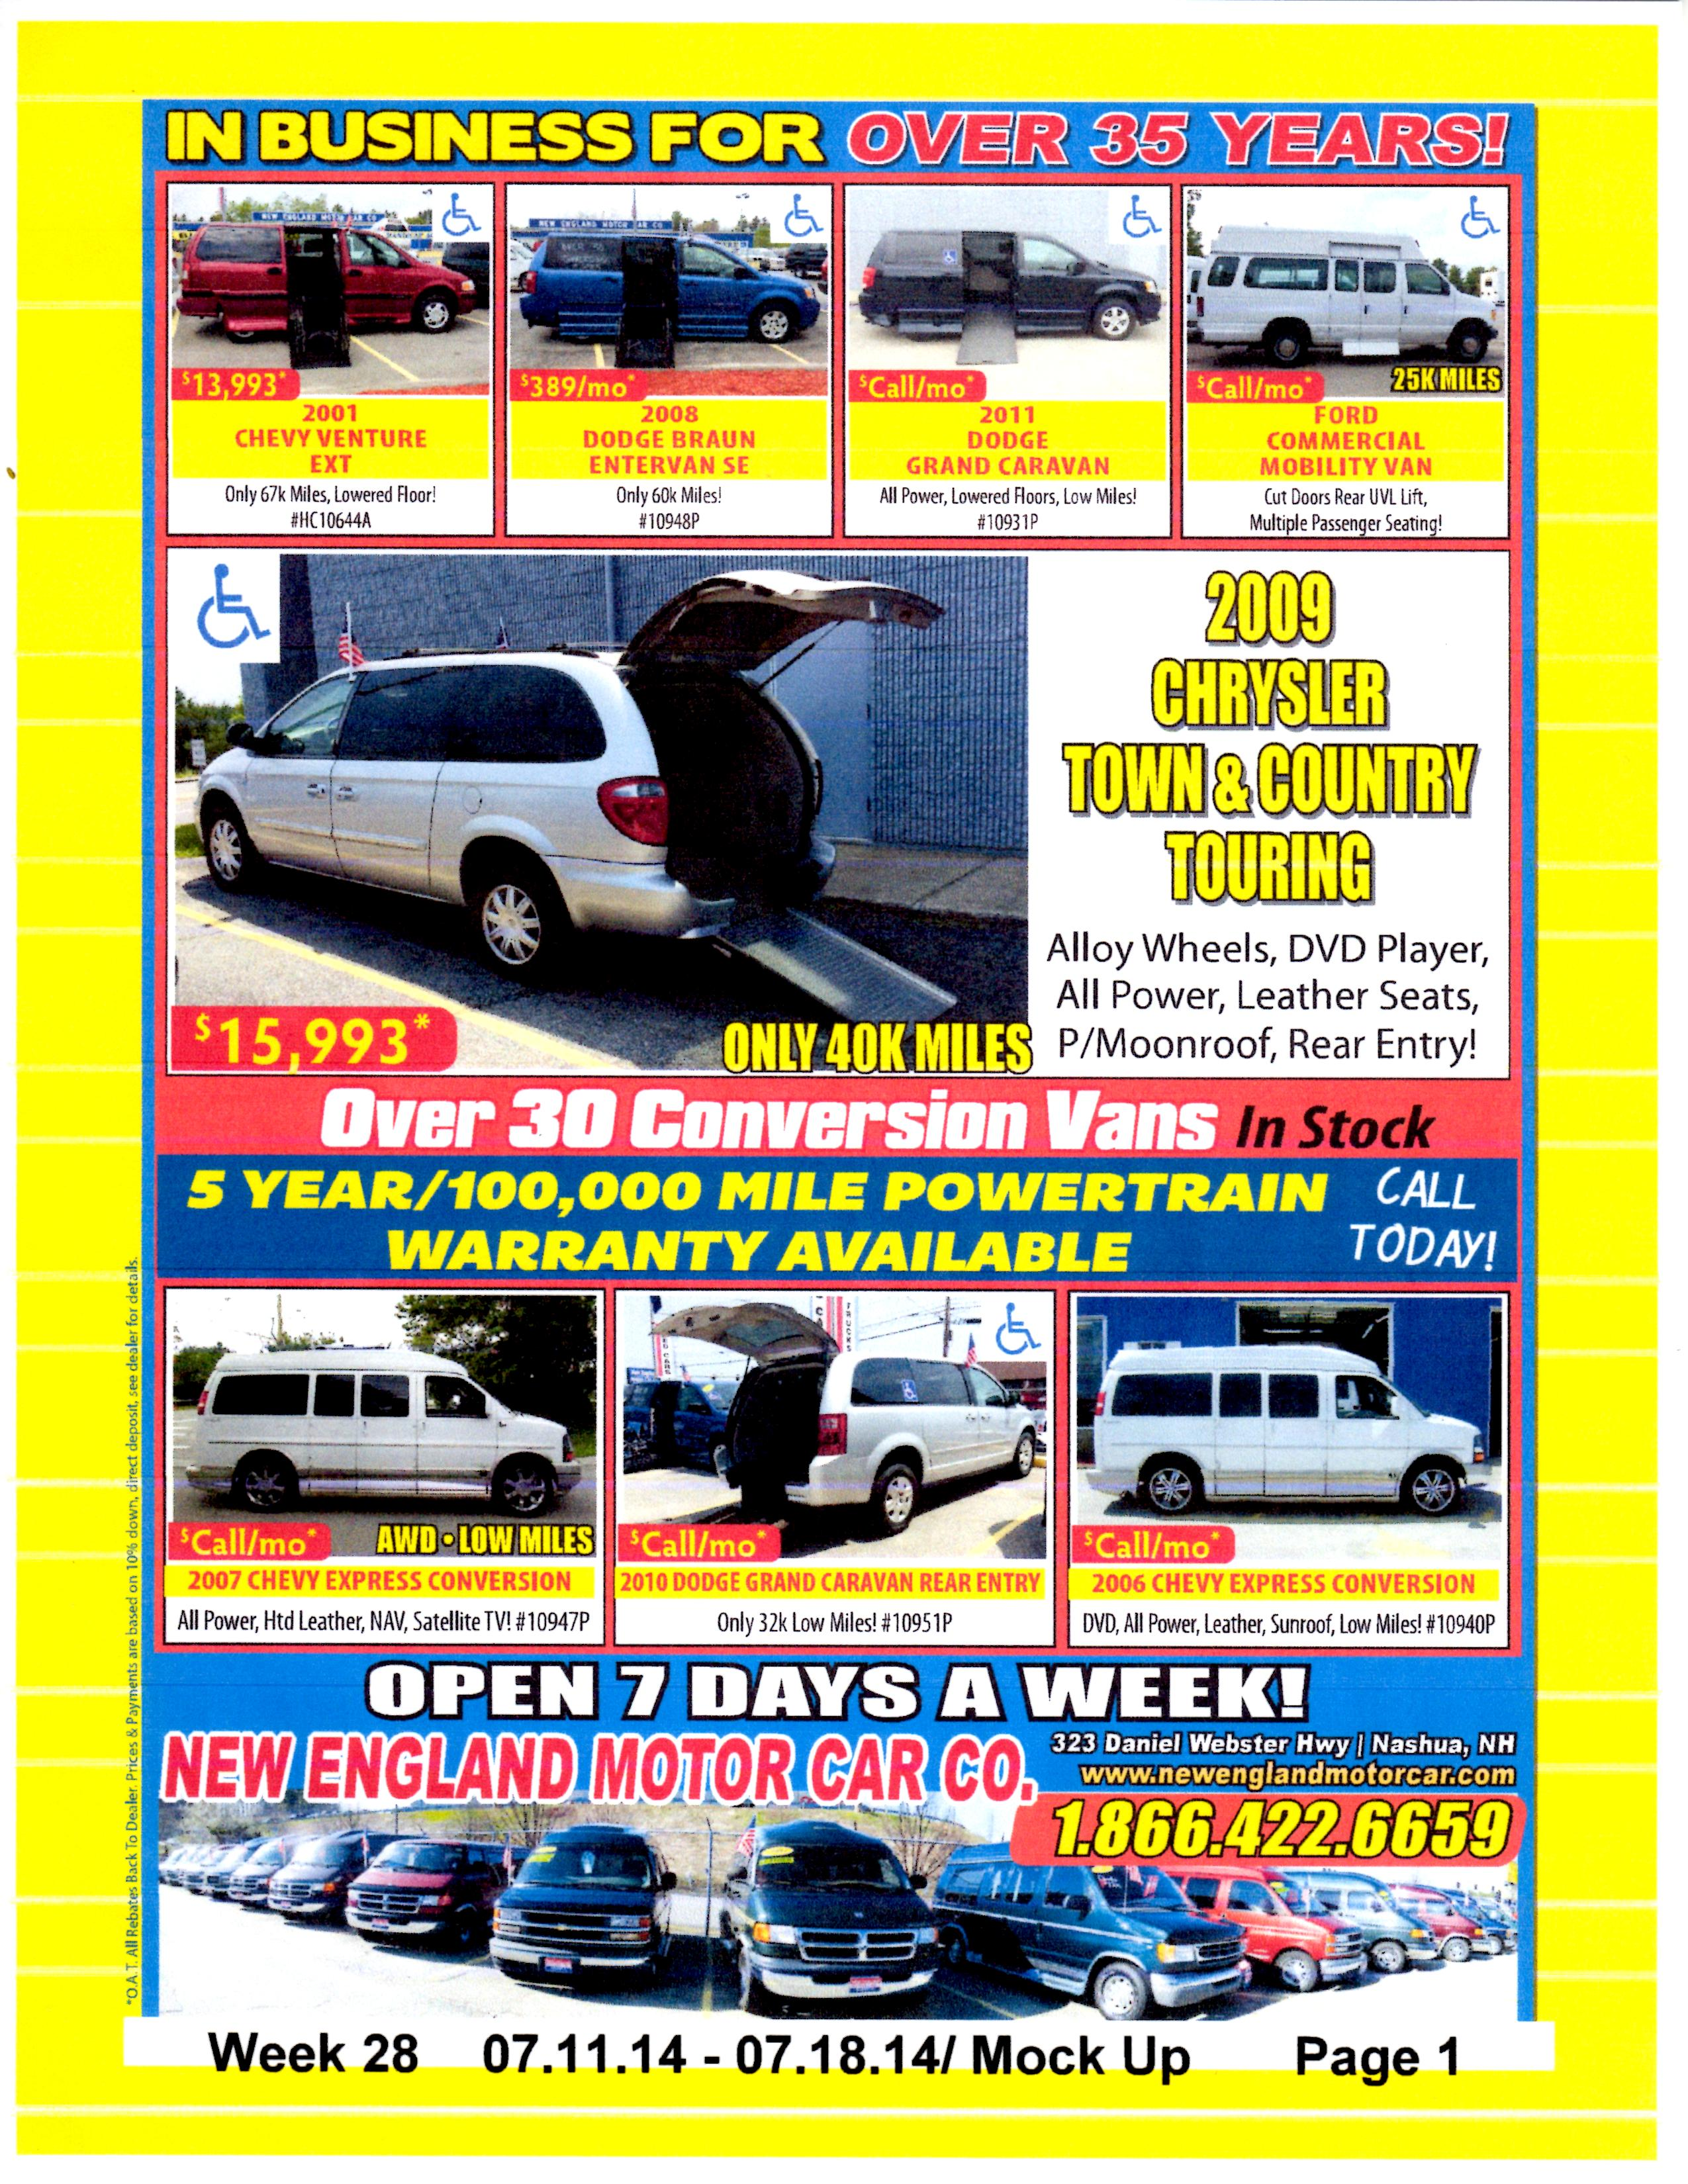 Handicapped Vans Vans Specials Hudson Nh 03051 New England Motor Car Company